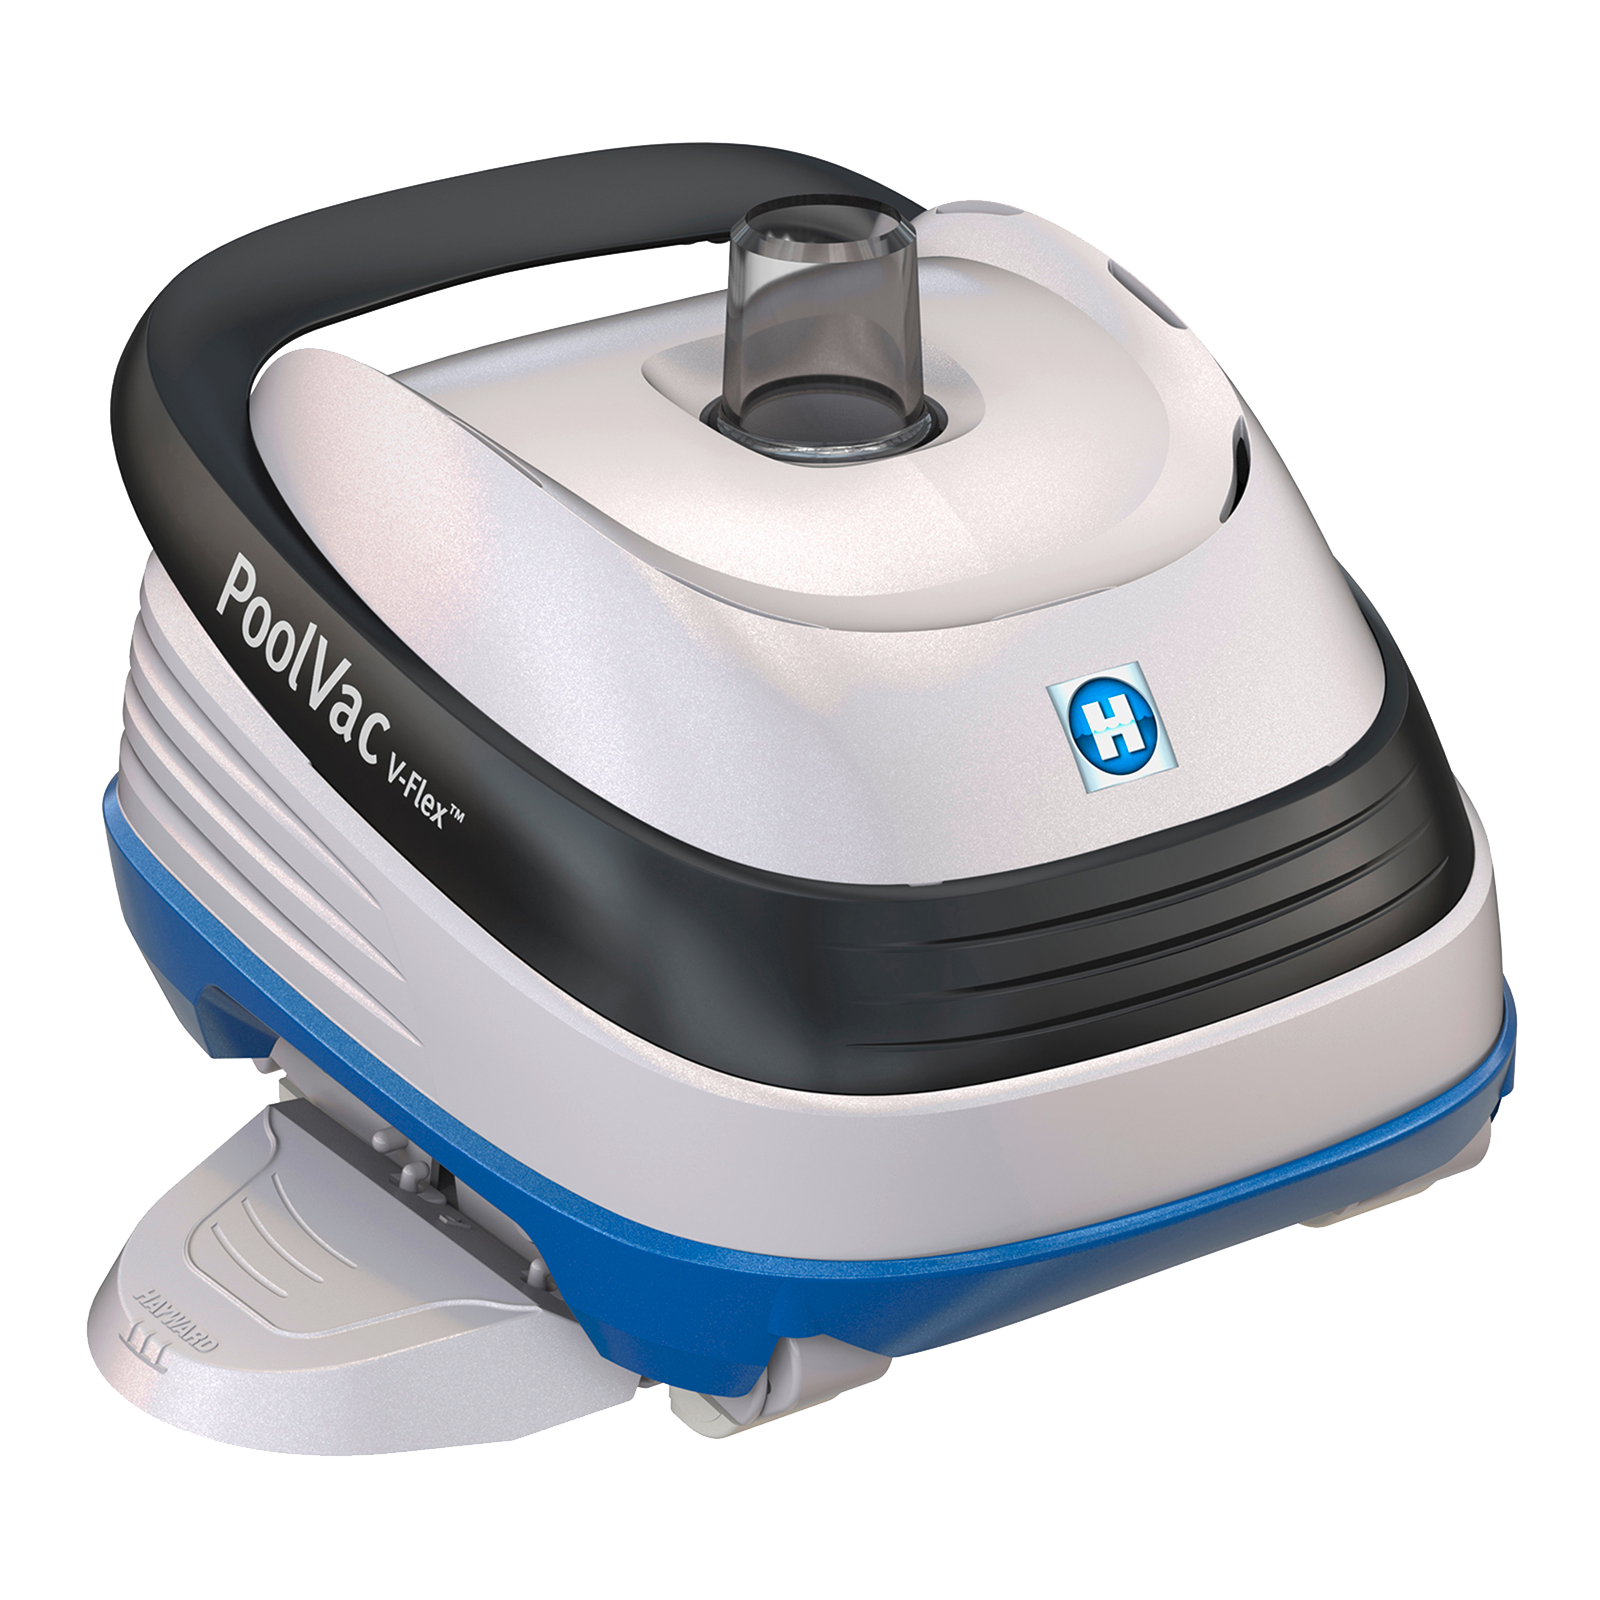 PoolVac V-FLEX™ Cleaner